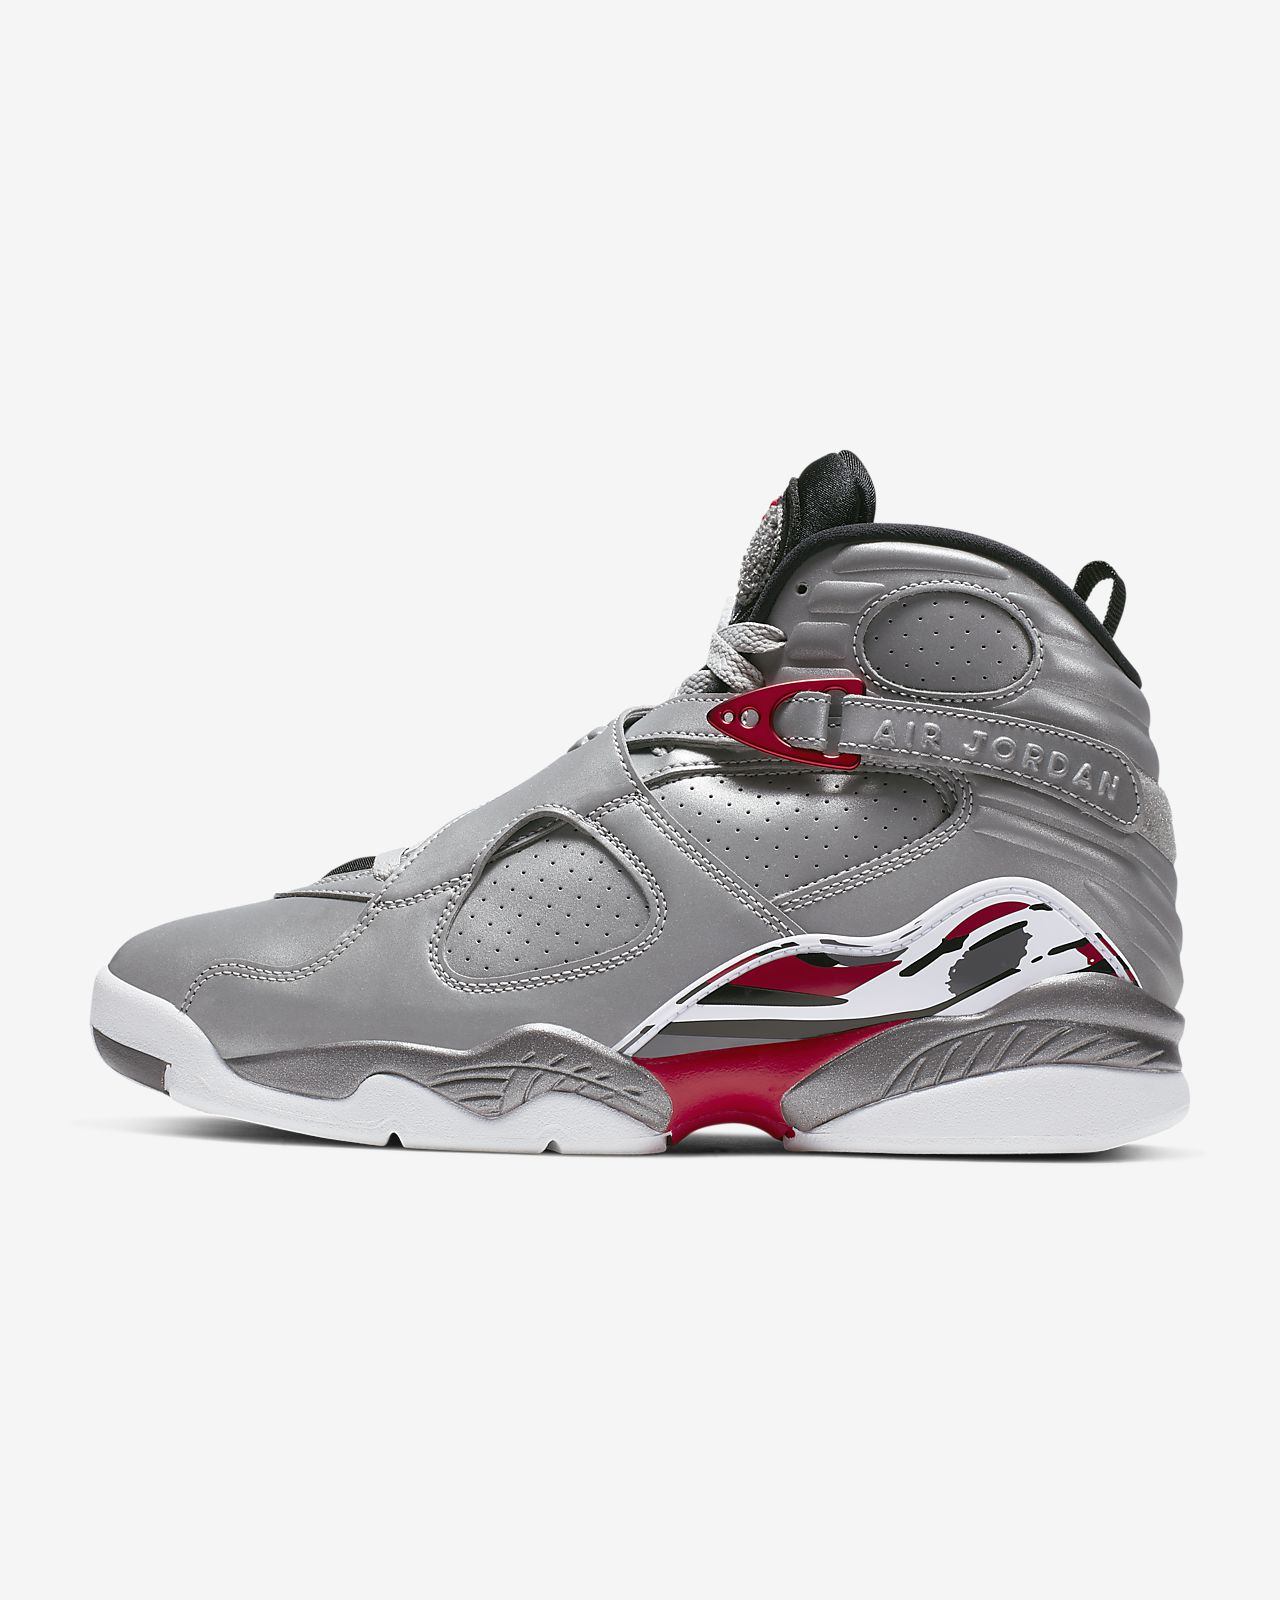 chaussures de sport 44e8a c7b31 Air Jordan 8 Retro Men's Shoe